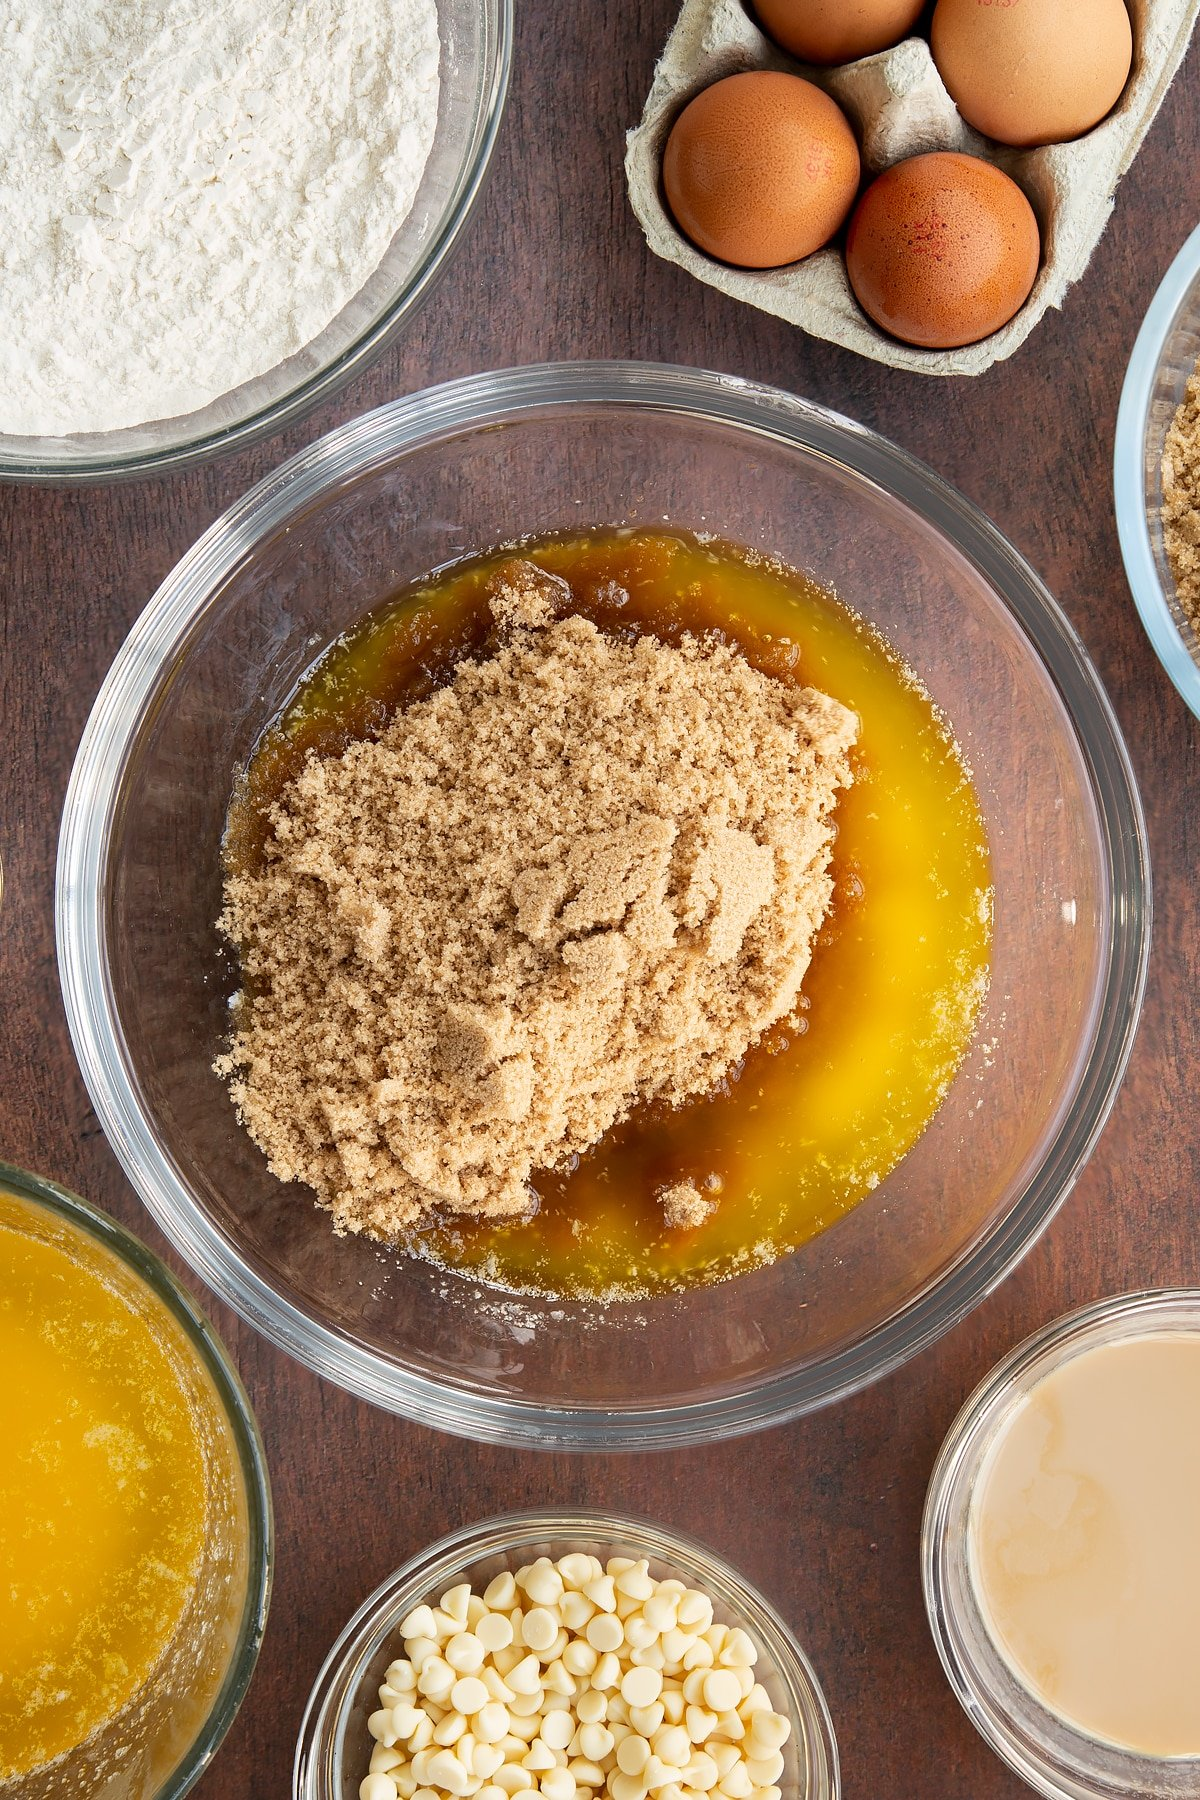 Melted butter and soft brown sugar in a glass mixing bowl. Ingredients to make Baileys blondies surround the bowl.